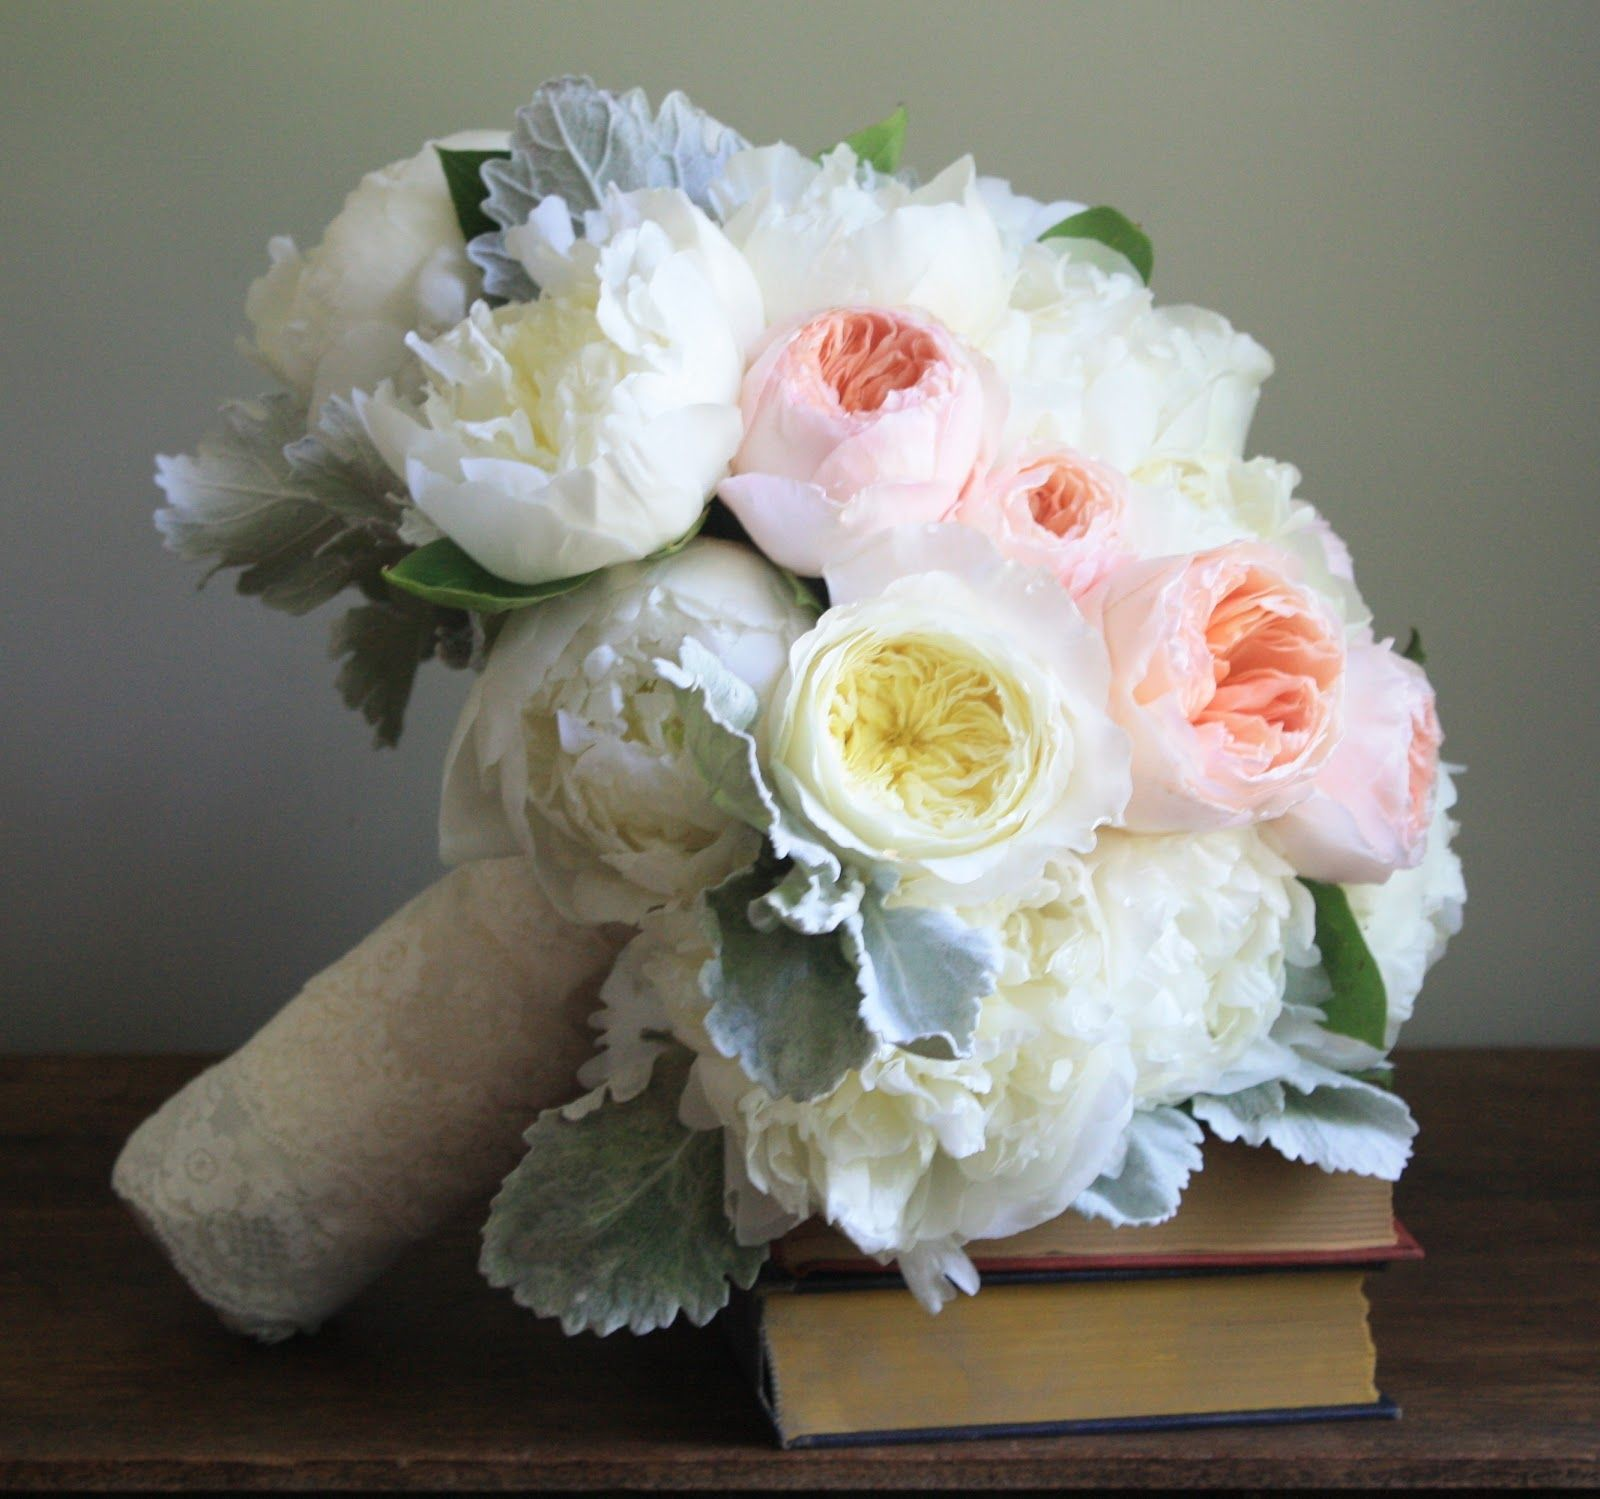 Garden Rose And Peony combination of white peonies and peach juliet roses (leave out